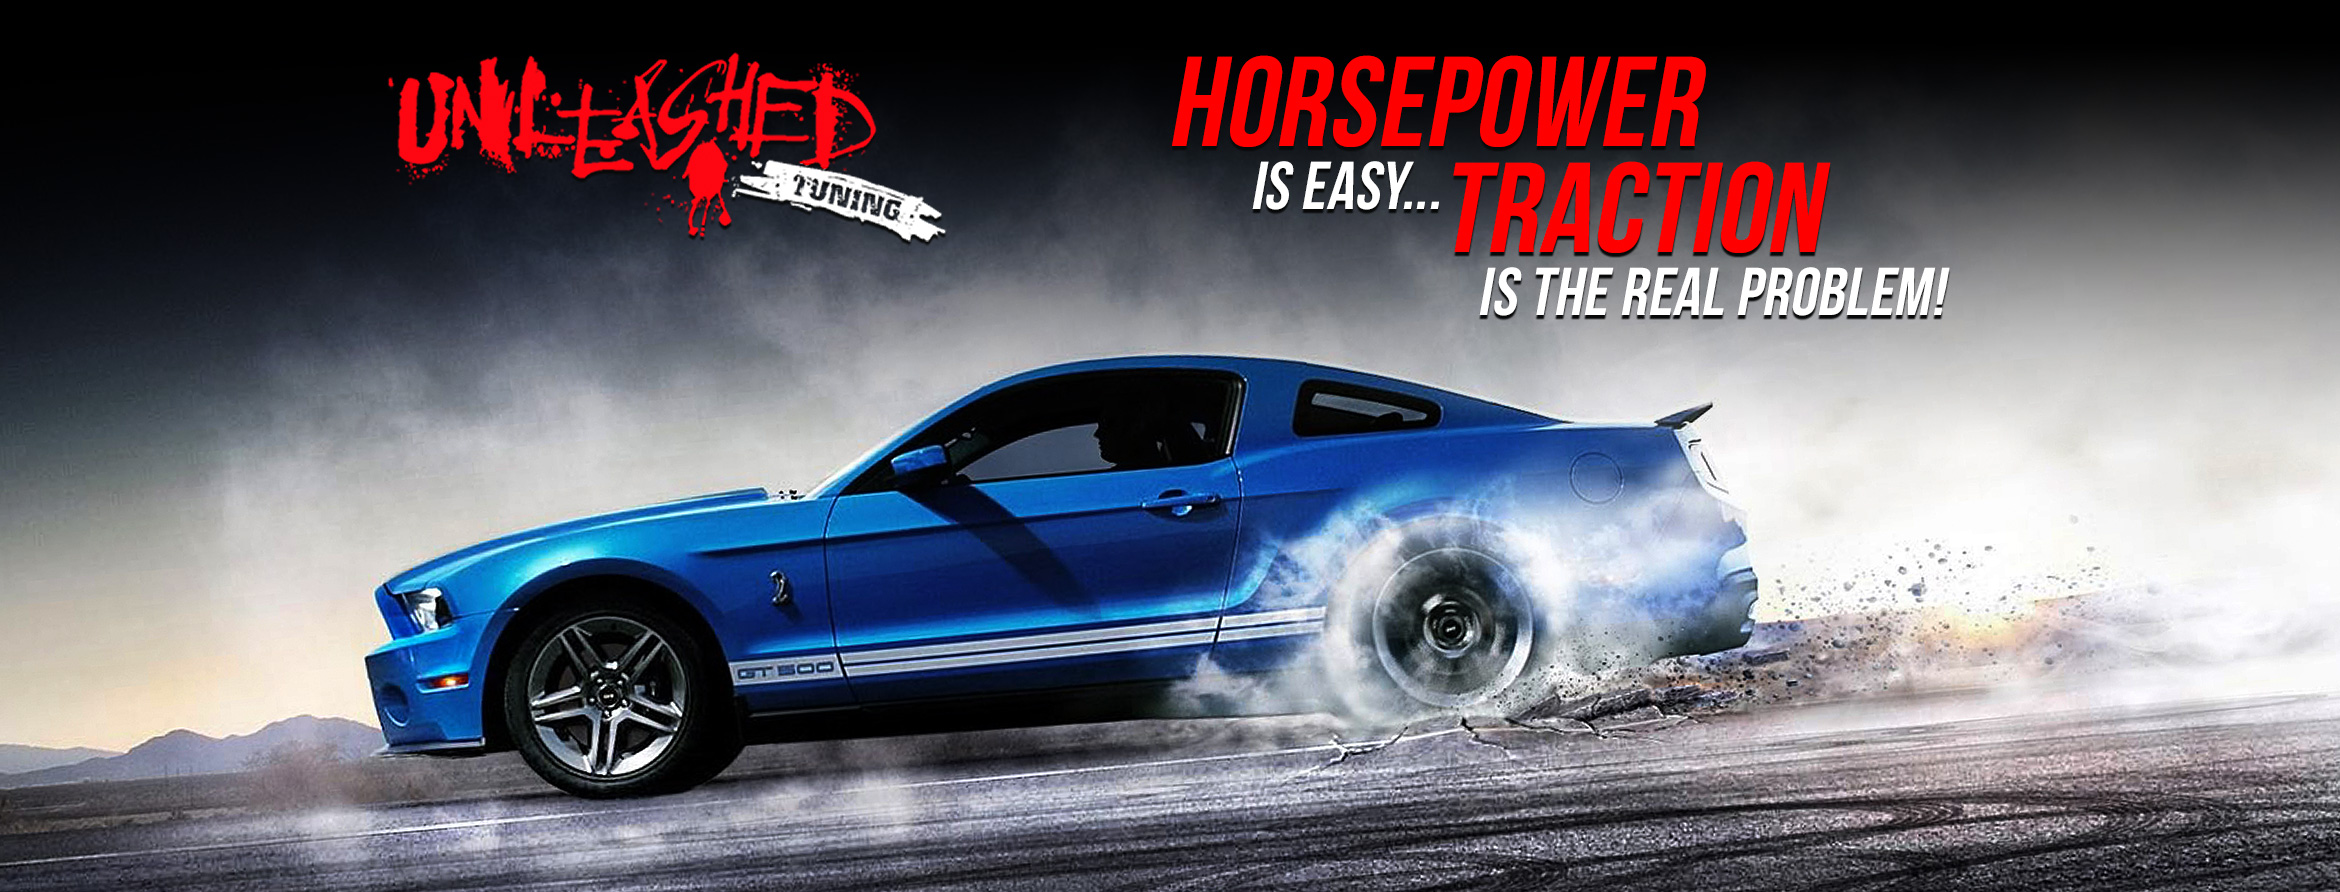 Unleashed Tuning Horsepower Is Easy Traction Is The Real Problem